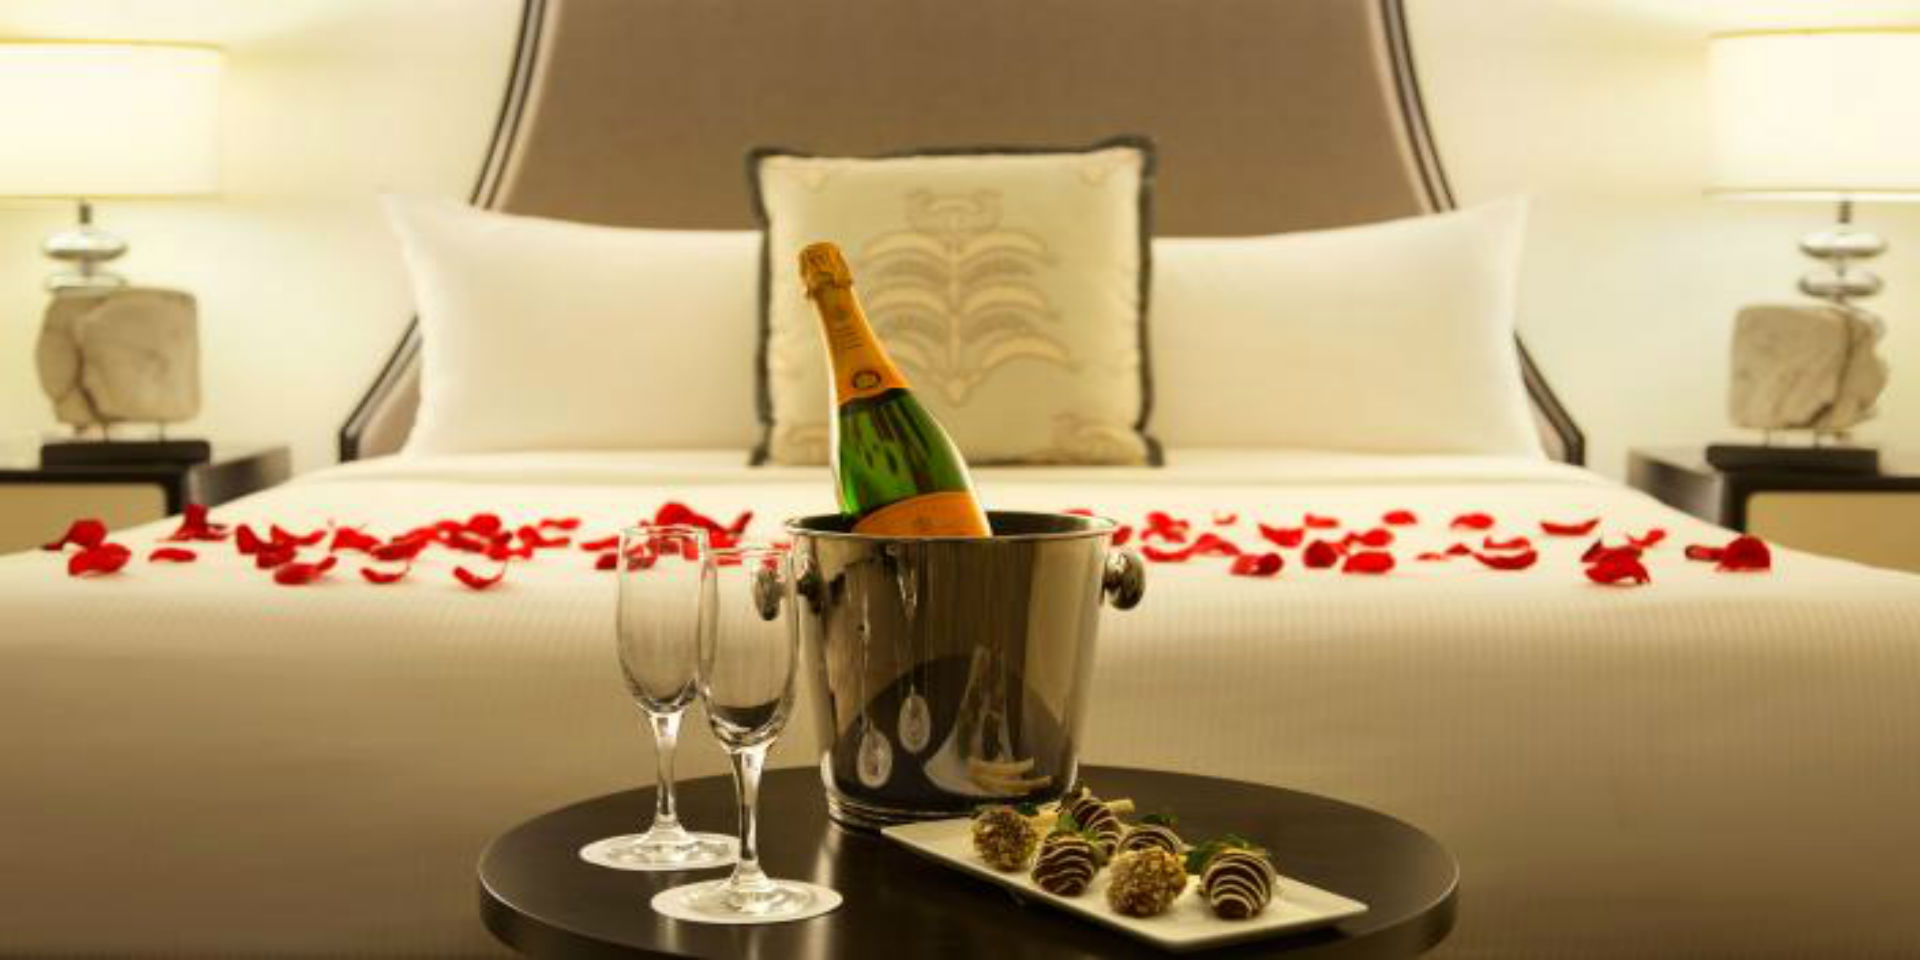 Tech that, cupid!: How hotels are hoping to play matchmakers